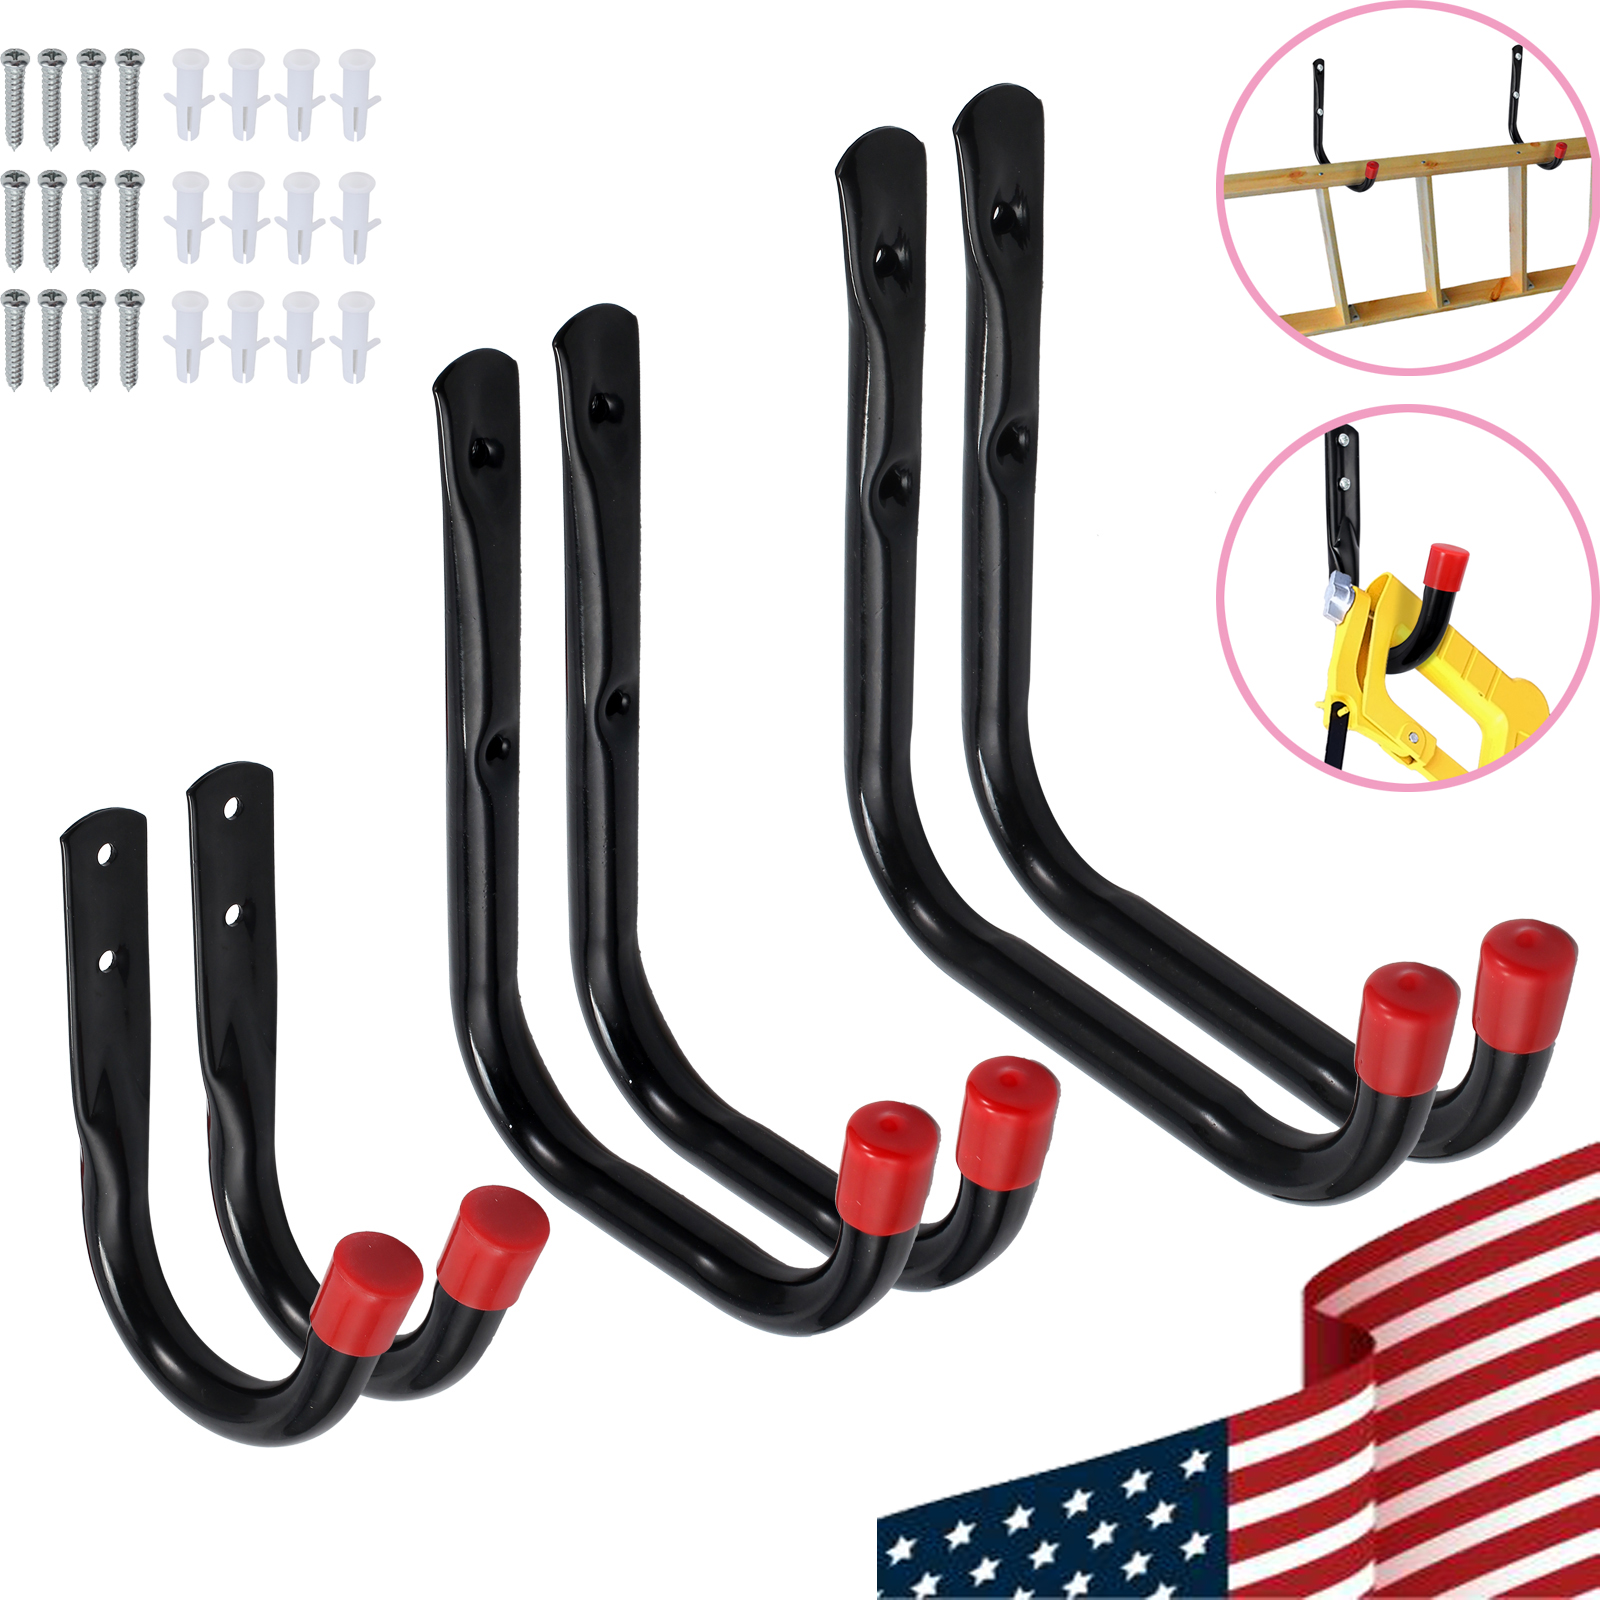 Details About 6pcs Heavy Duty Storage Hooks Wall Mounted Ladder Garage Tools Utility Organizer